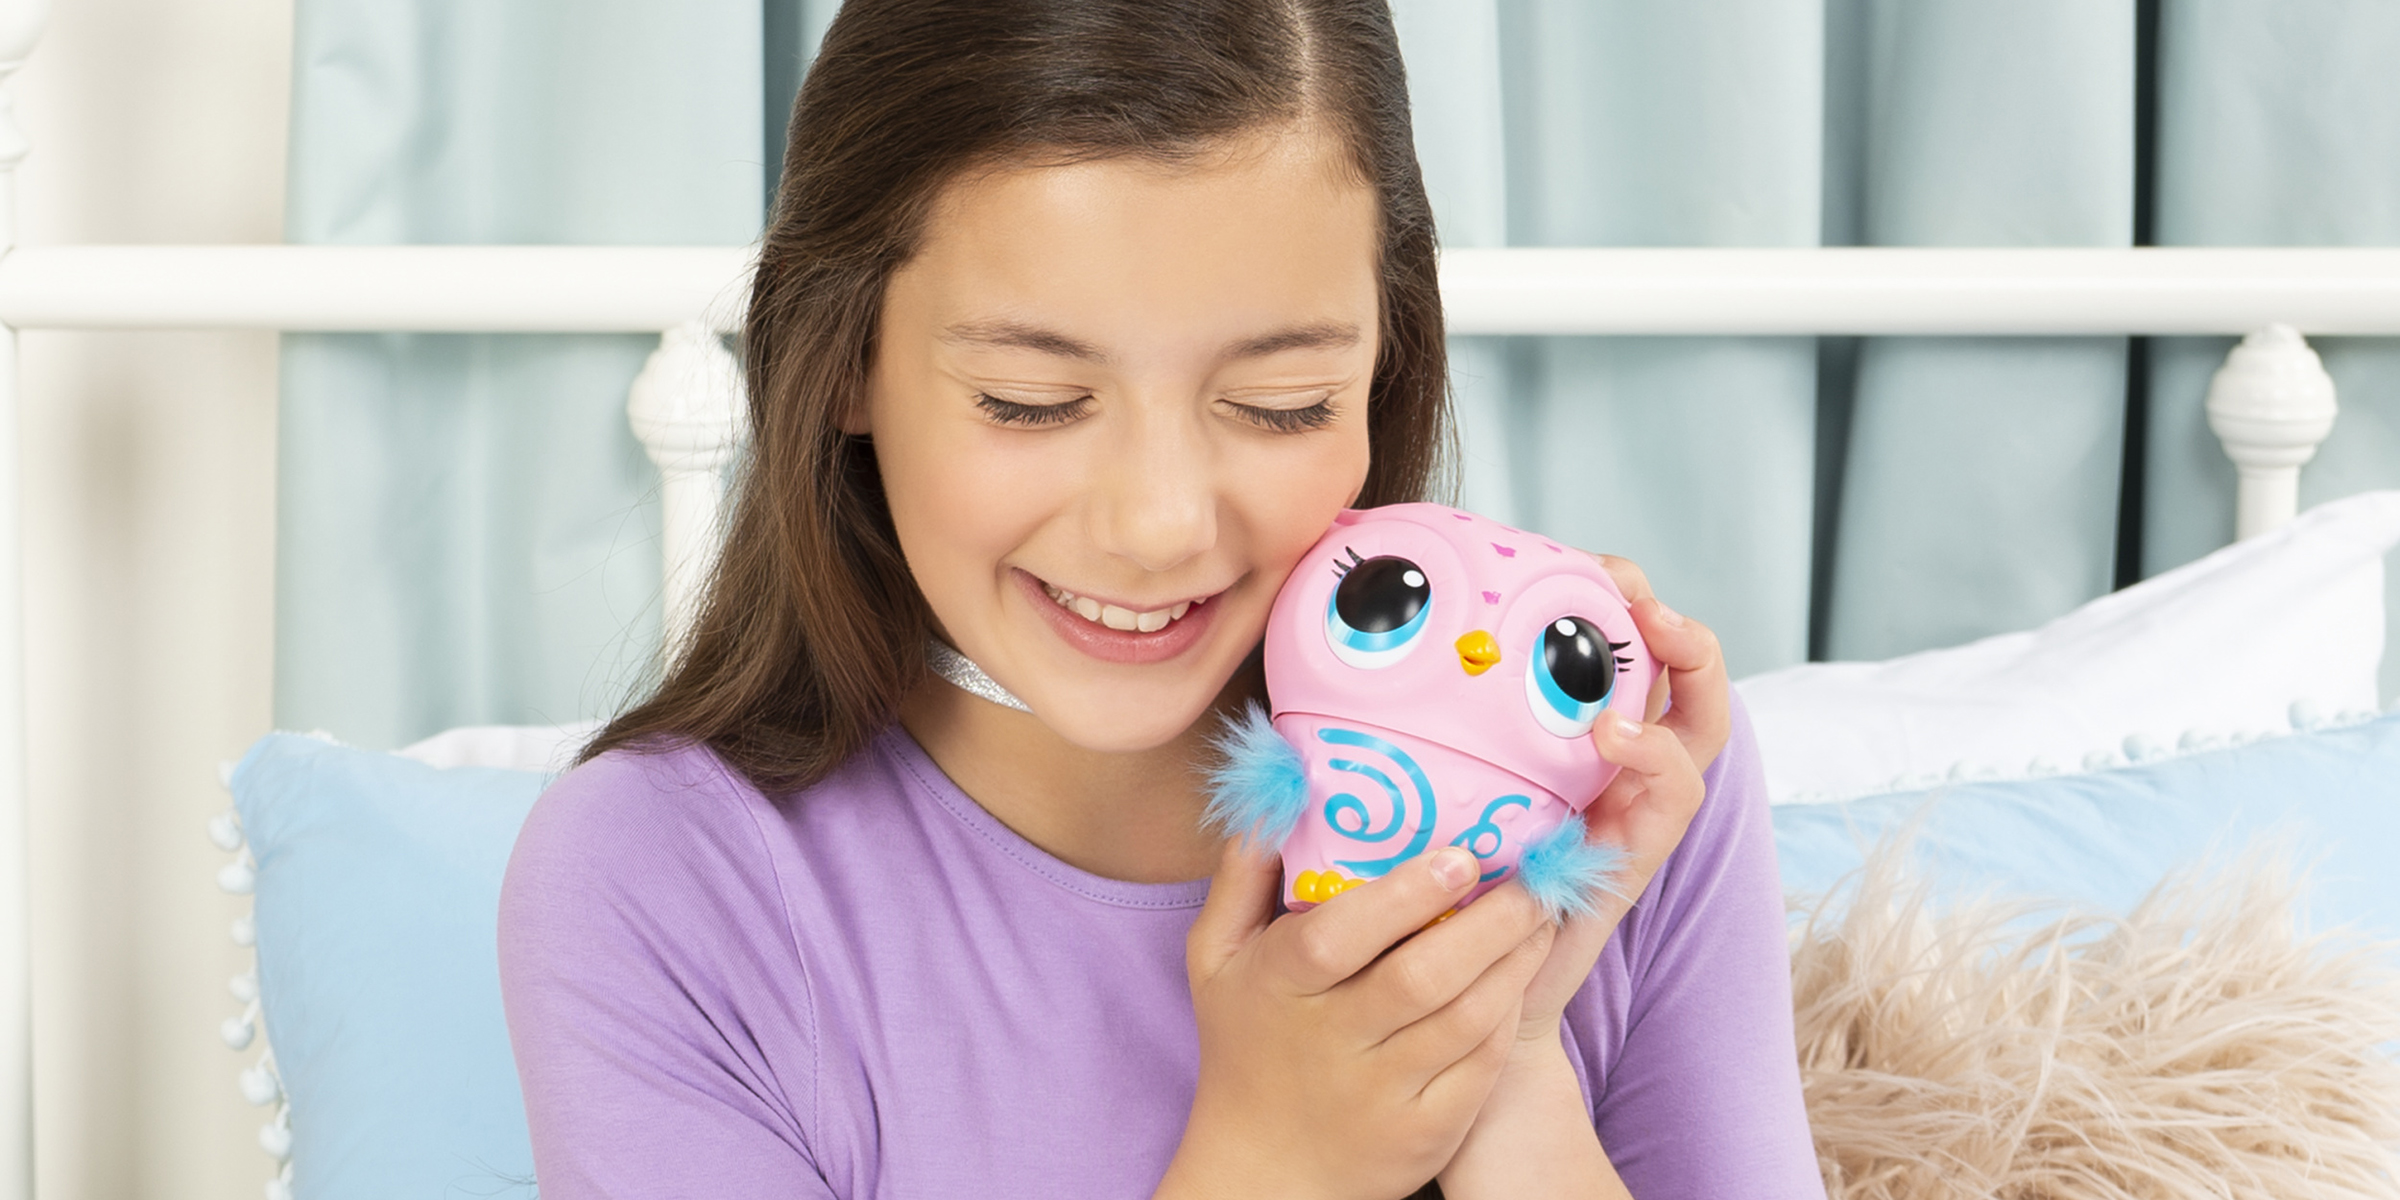 20 Popular Toys For Kids In 2020